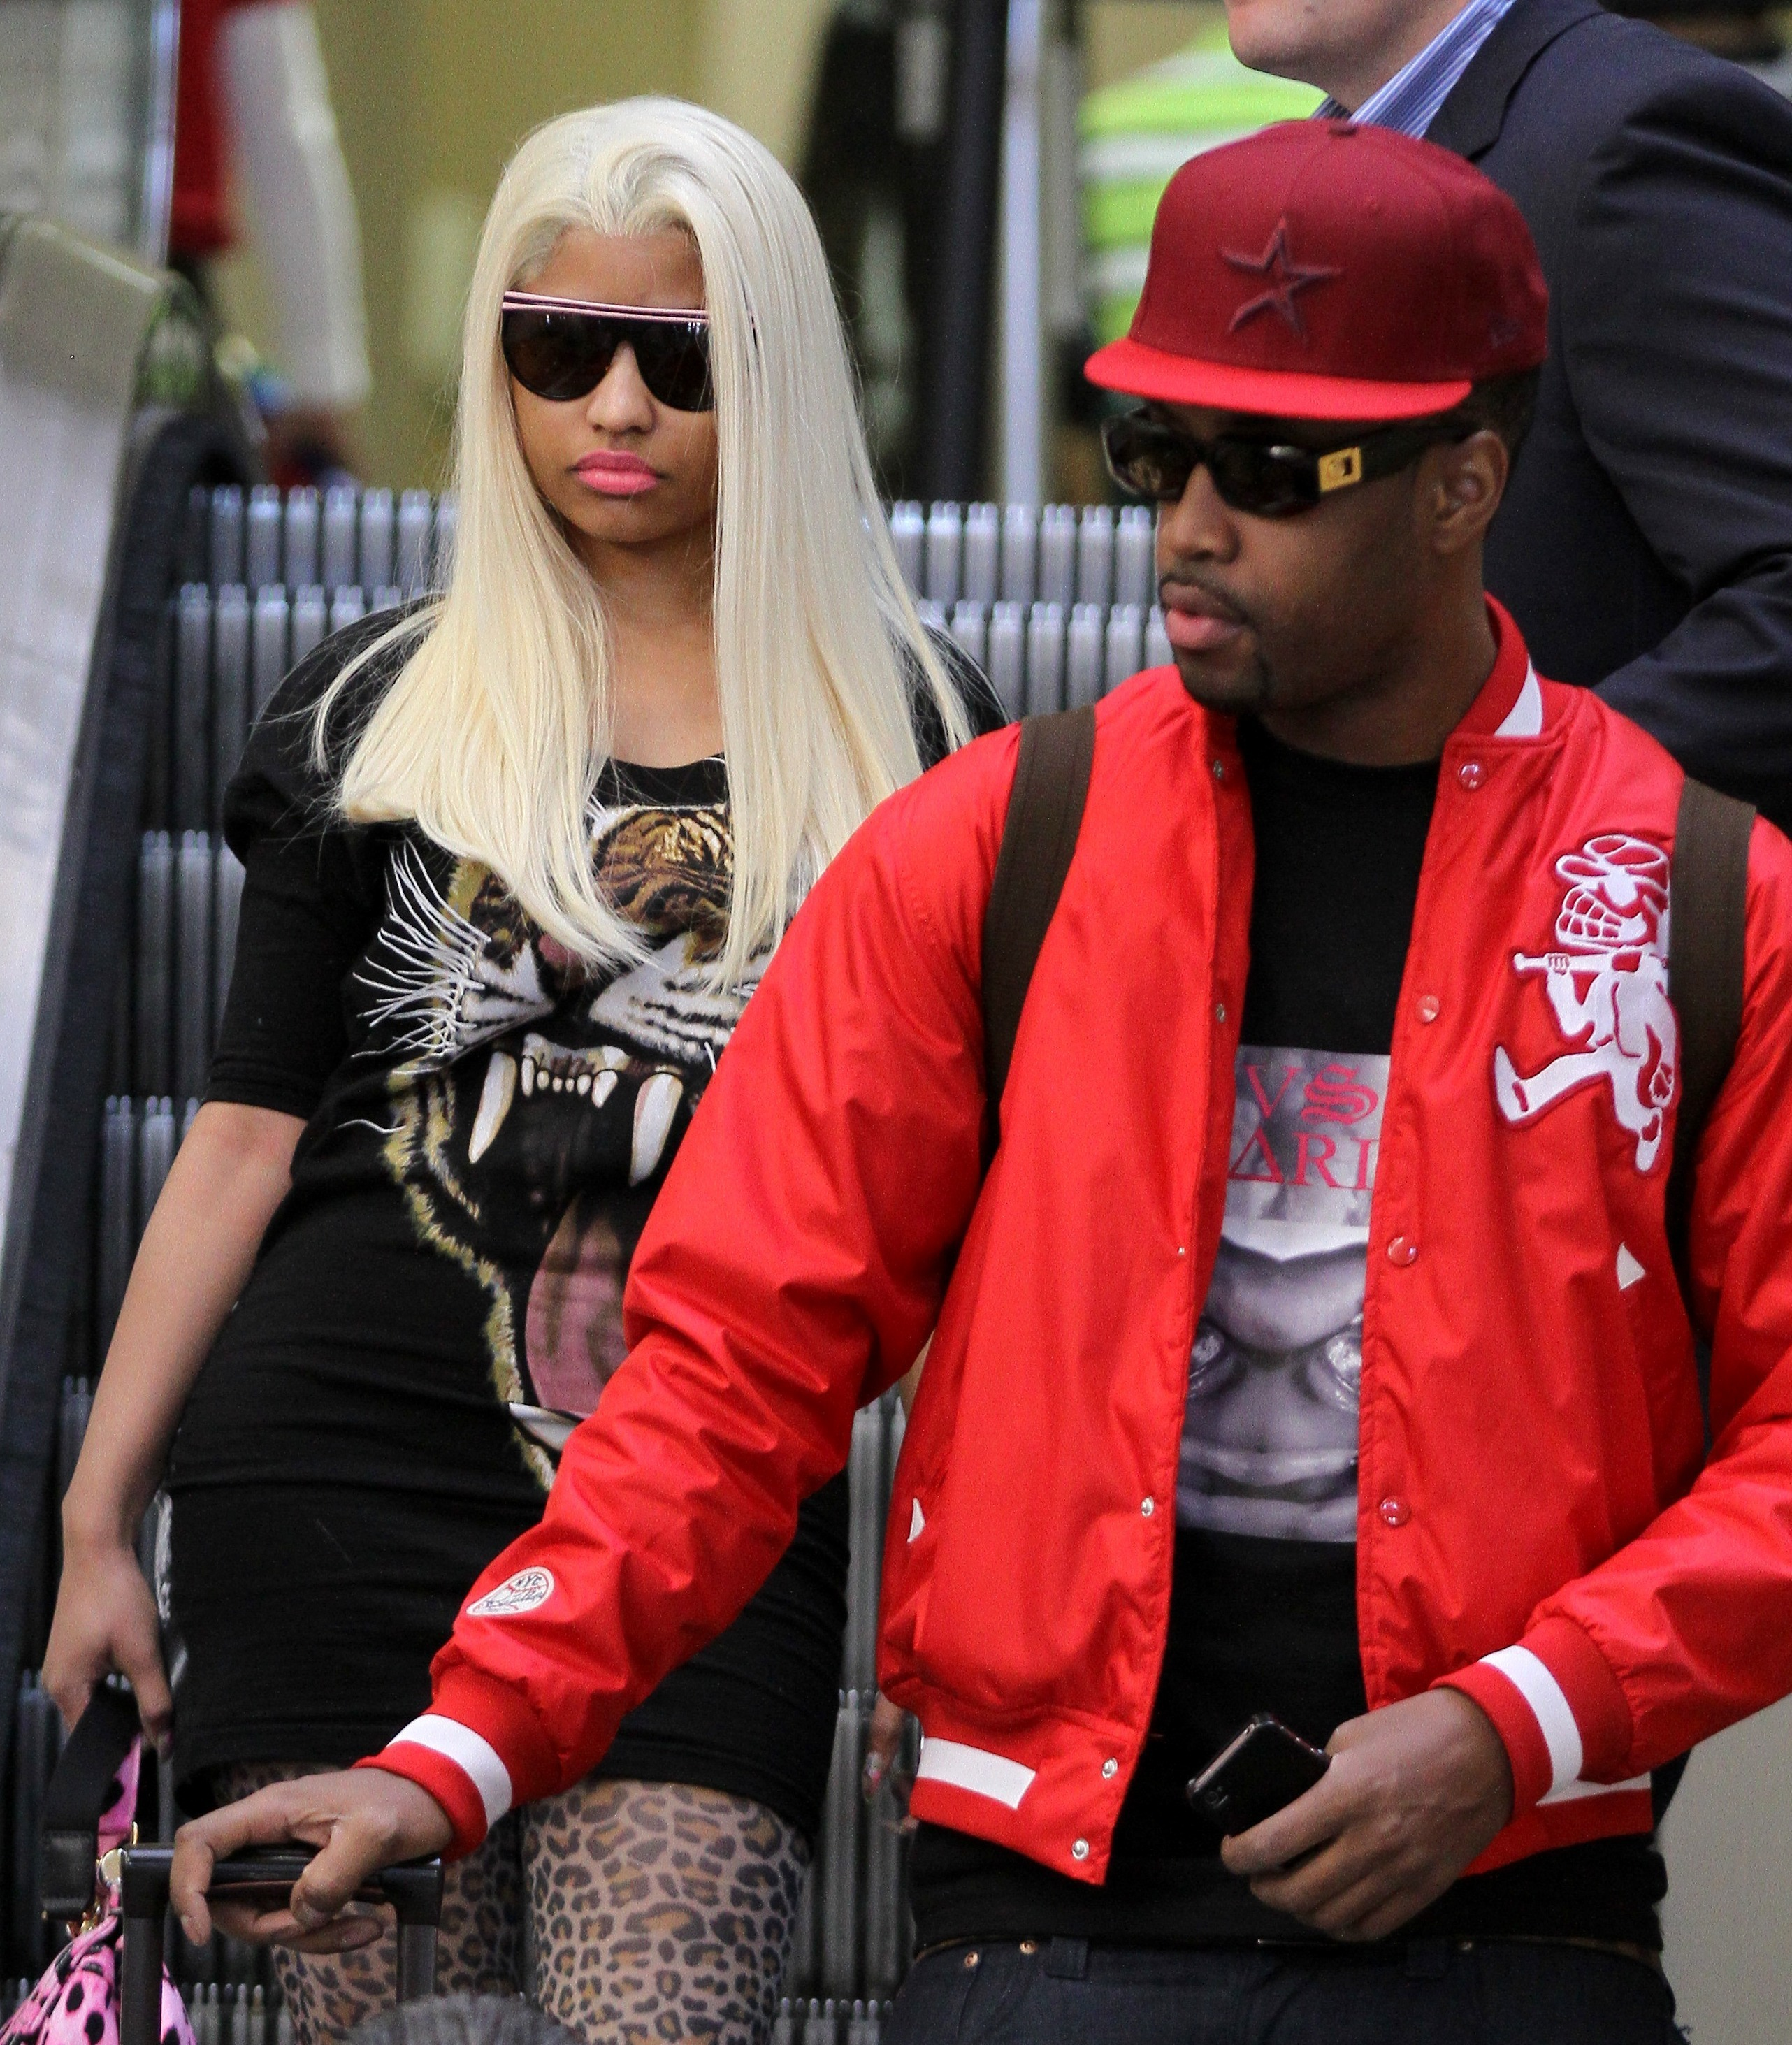 NICKI MINAJ AND BEST FRIEND AT LAX Hot Shots: Nicki Minaj Gets Shady In LAX